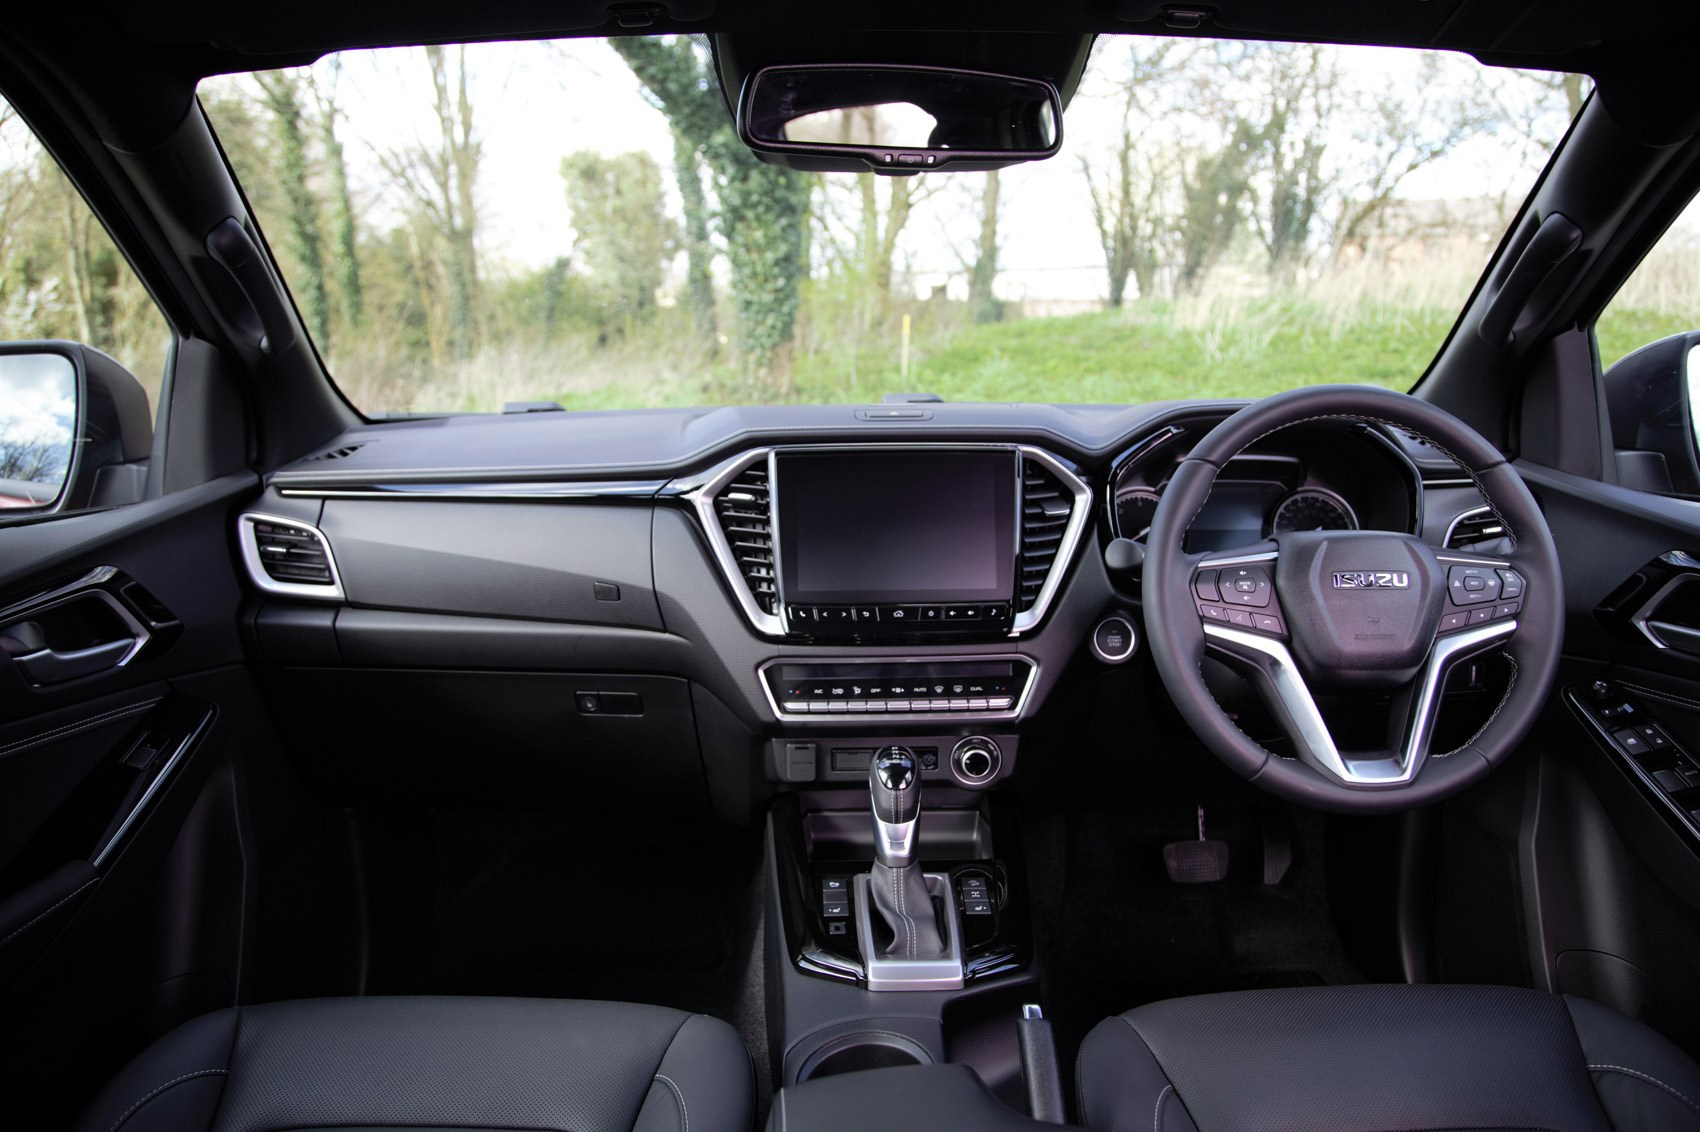 Isuzu D-Max review, 2021, V-Cross cab interior with six-speed automatic transmission